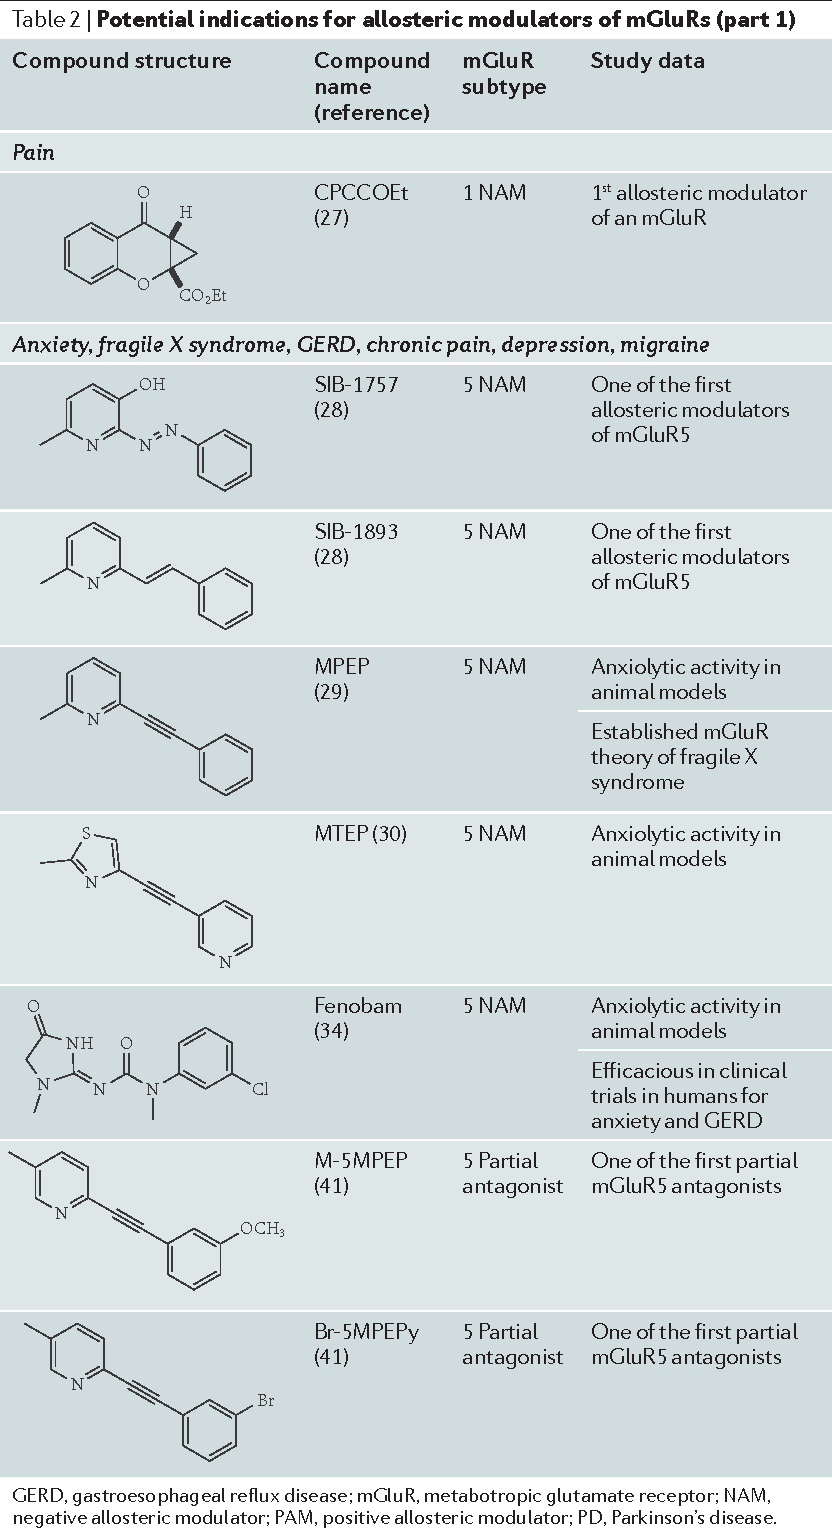 Table 2 | Potential indications for allosteric modulators of mGluRs (part 1)